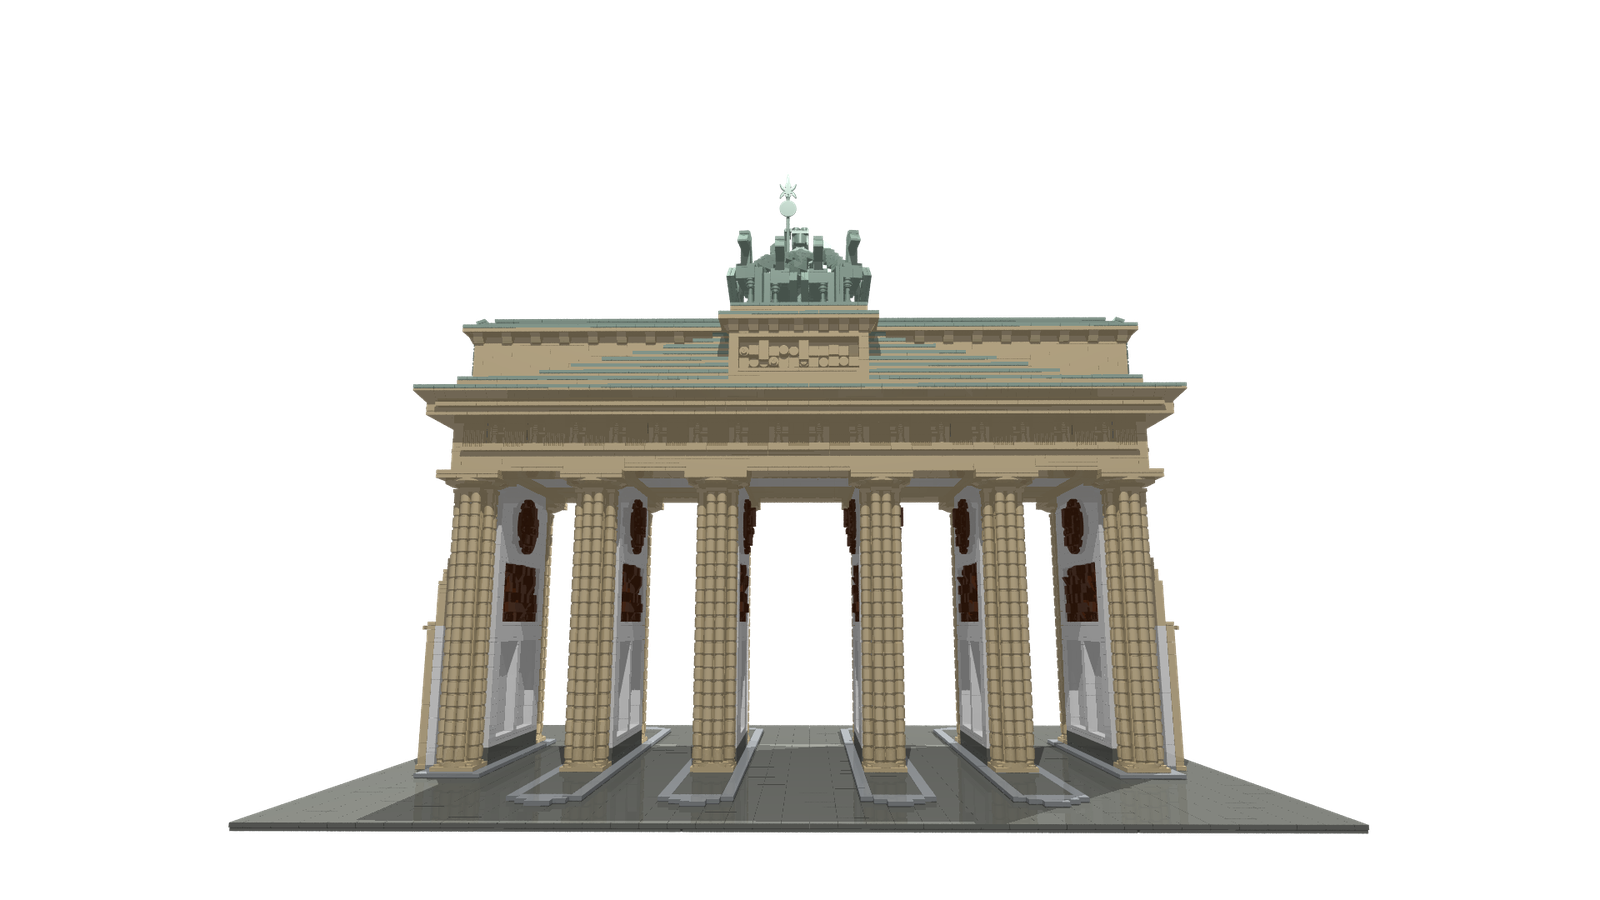 Brandenburg gate png. Lego ideas product